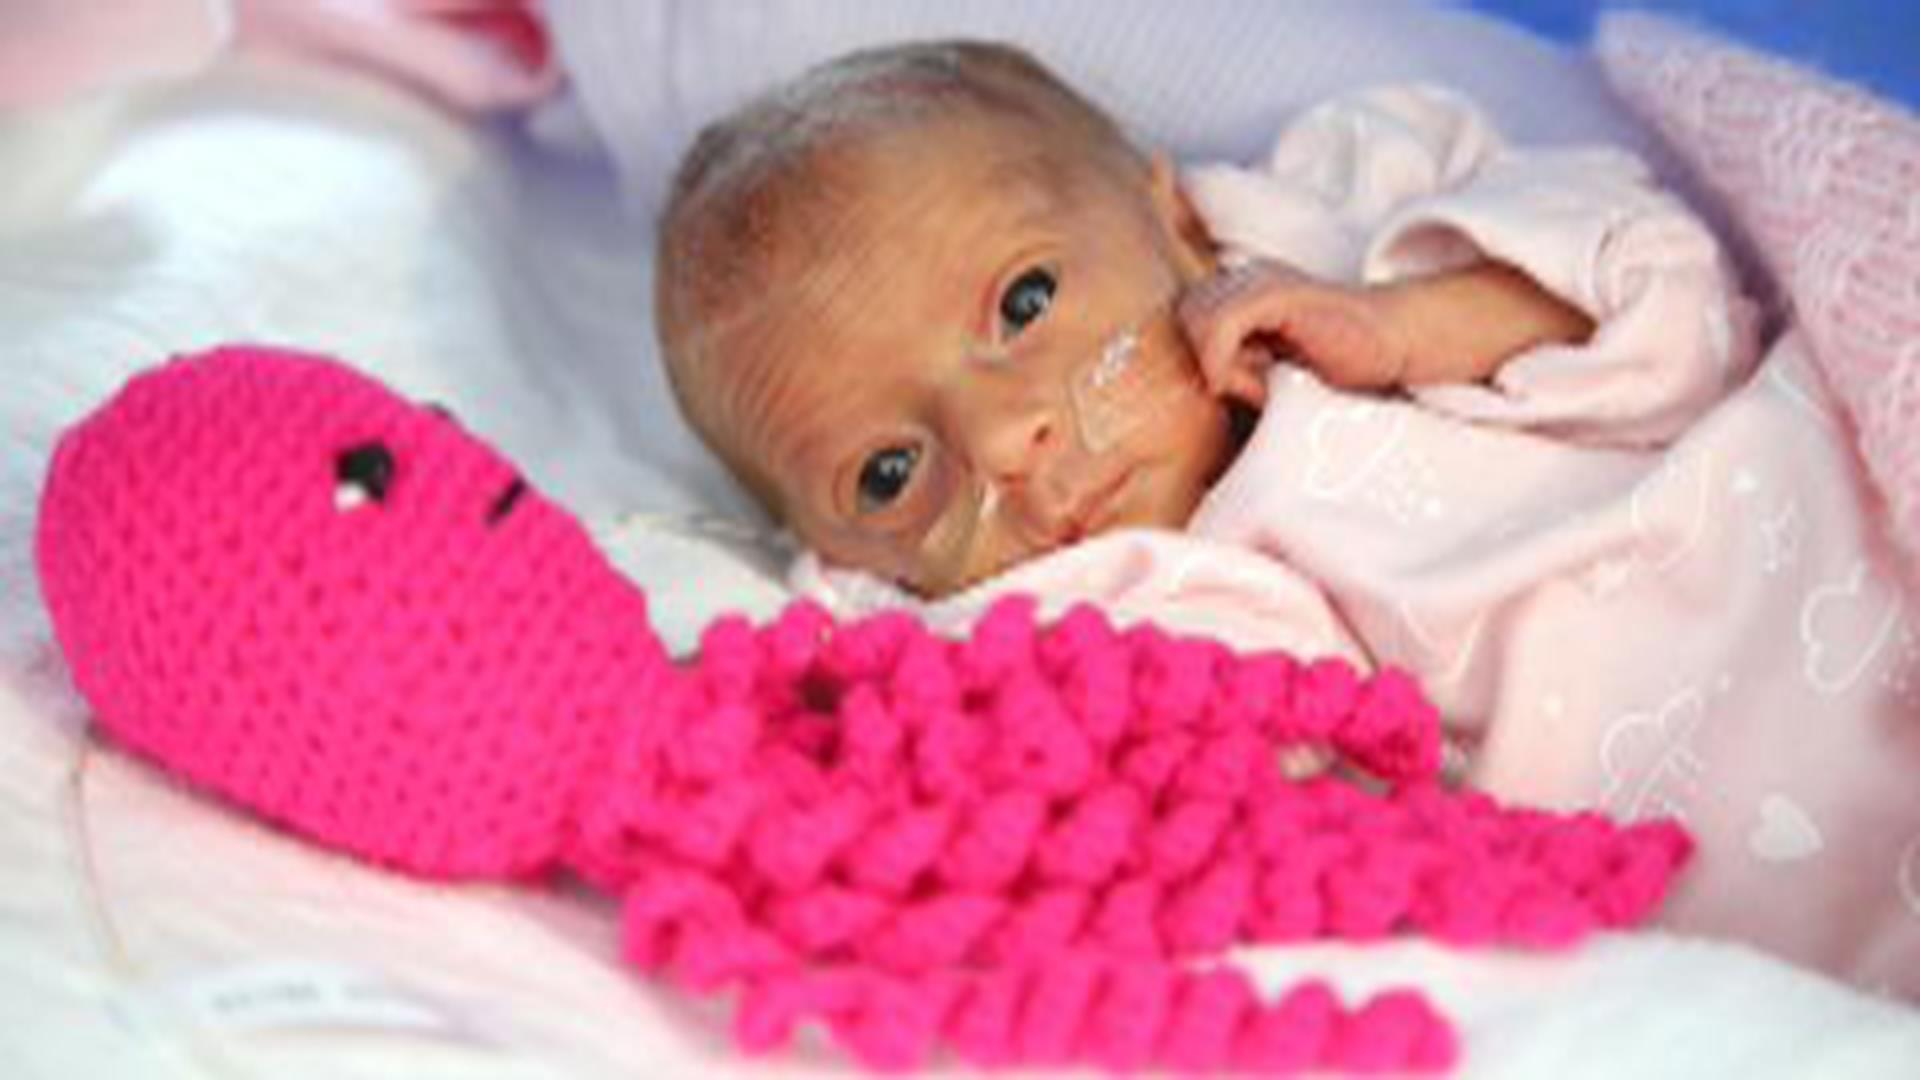 the most premature surviving baby was born at 21 weeks